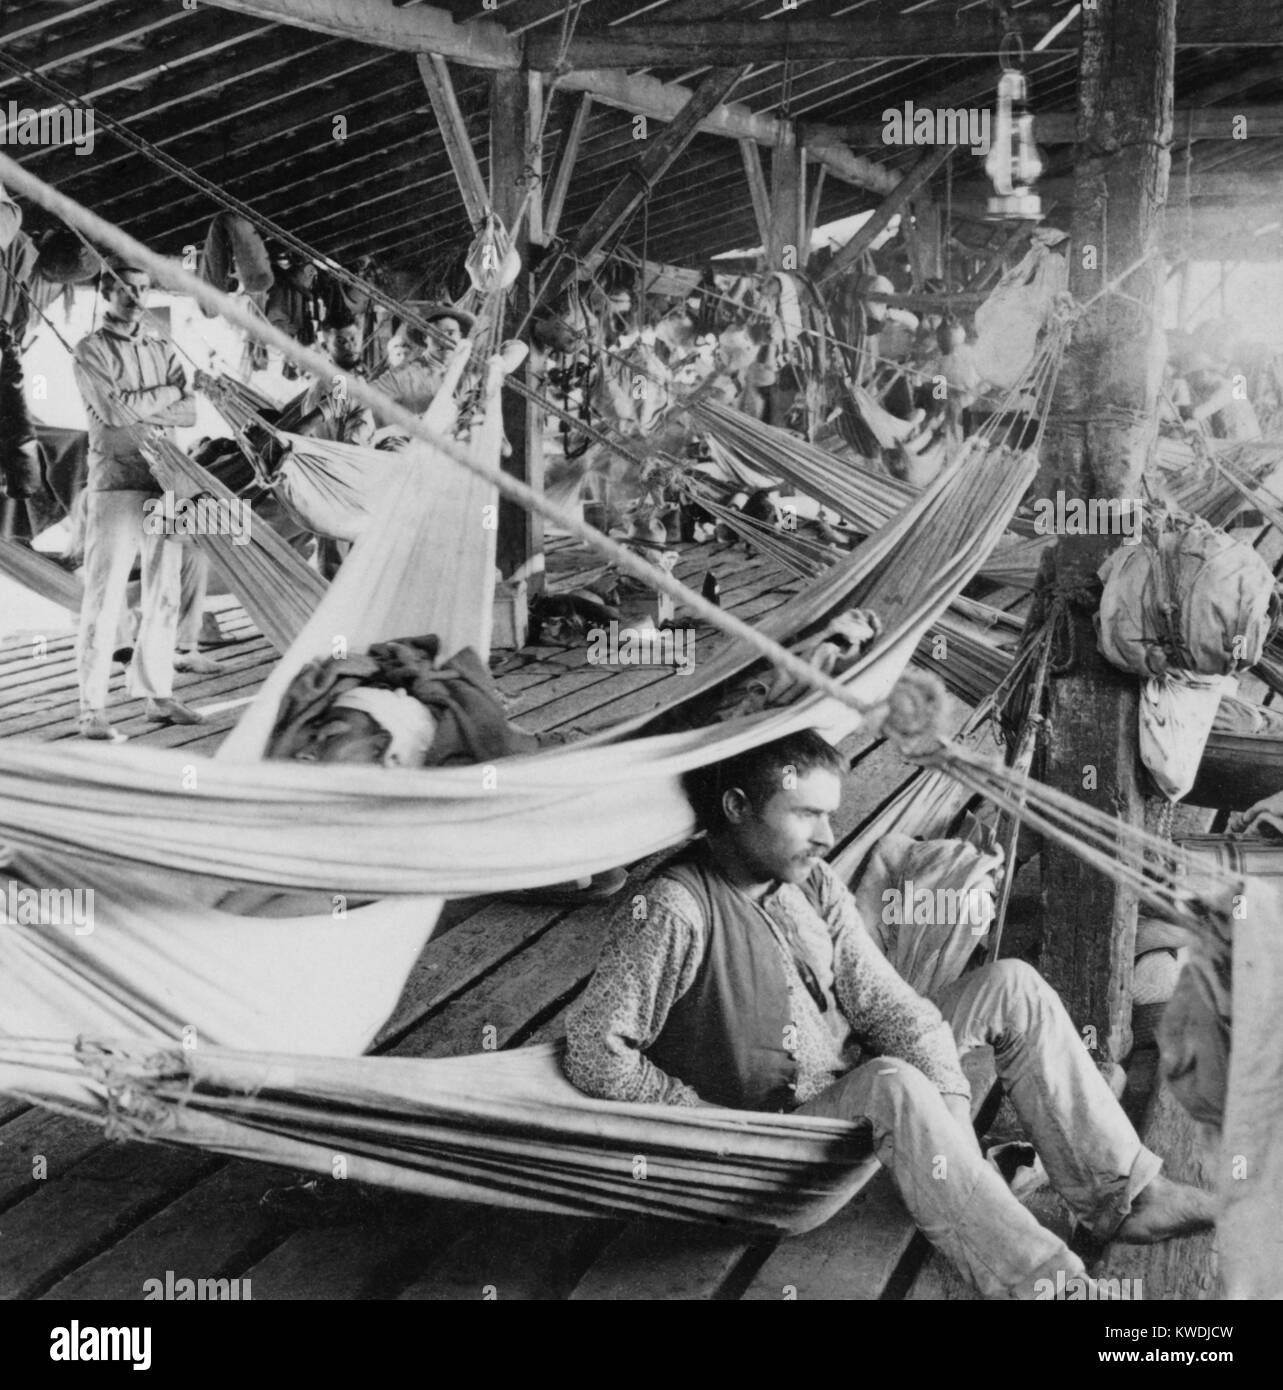 Fort Ann Primitive Camping: Pow History Stock Photos & Pow History Stock Images